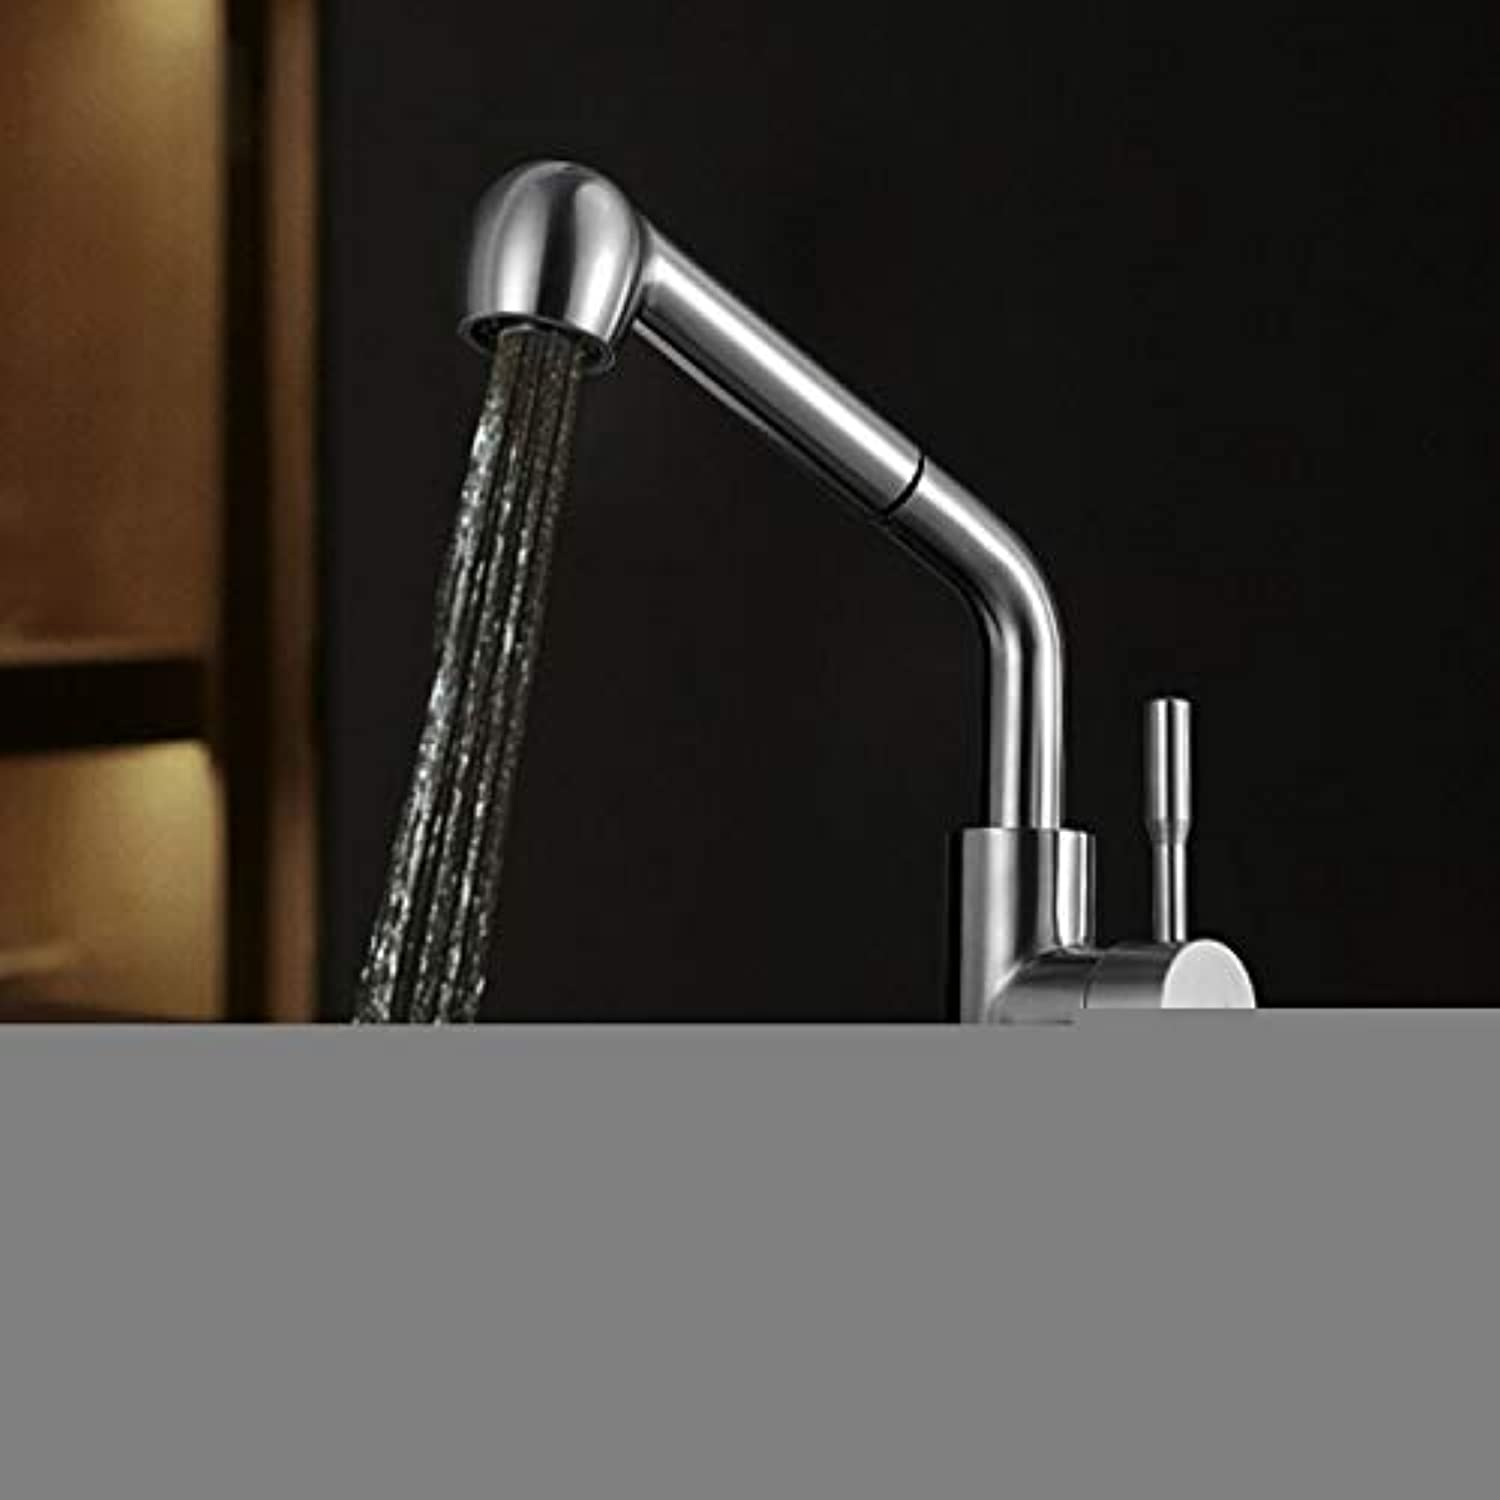 Commercial Single Lever Pull Down Kitchen Sink Faucet Brass Constructed Polished ?Brushed Faucet Kitchen Faucet Sink Basin Faucet Stainless Steel Faucet